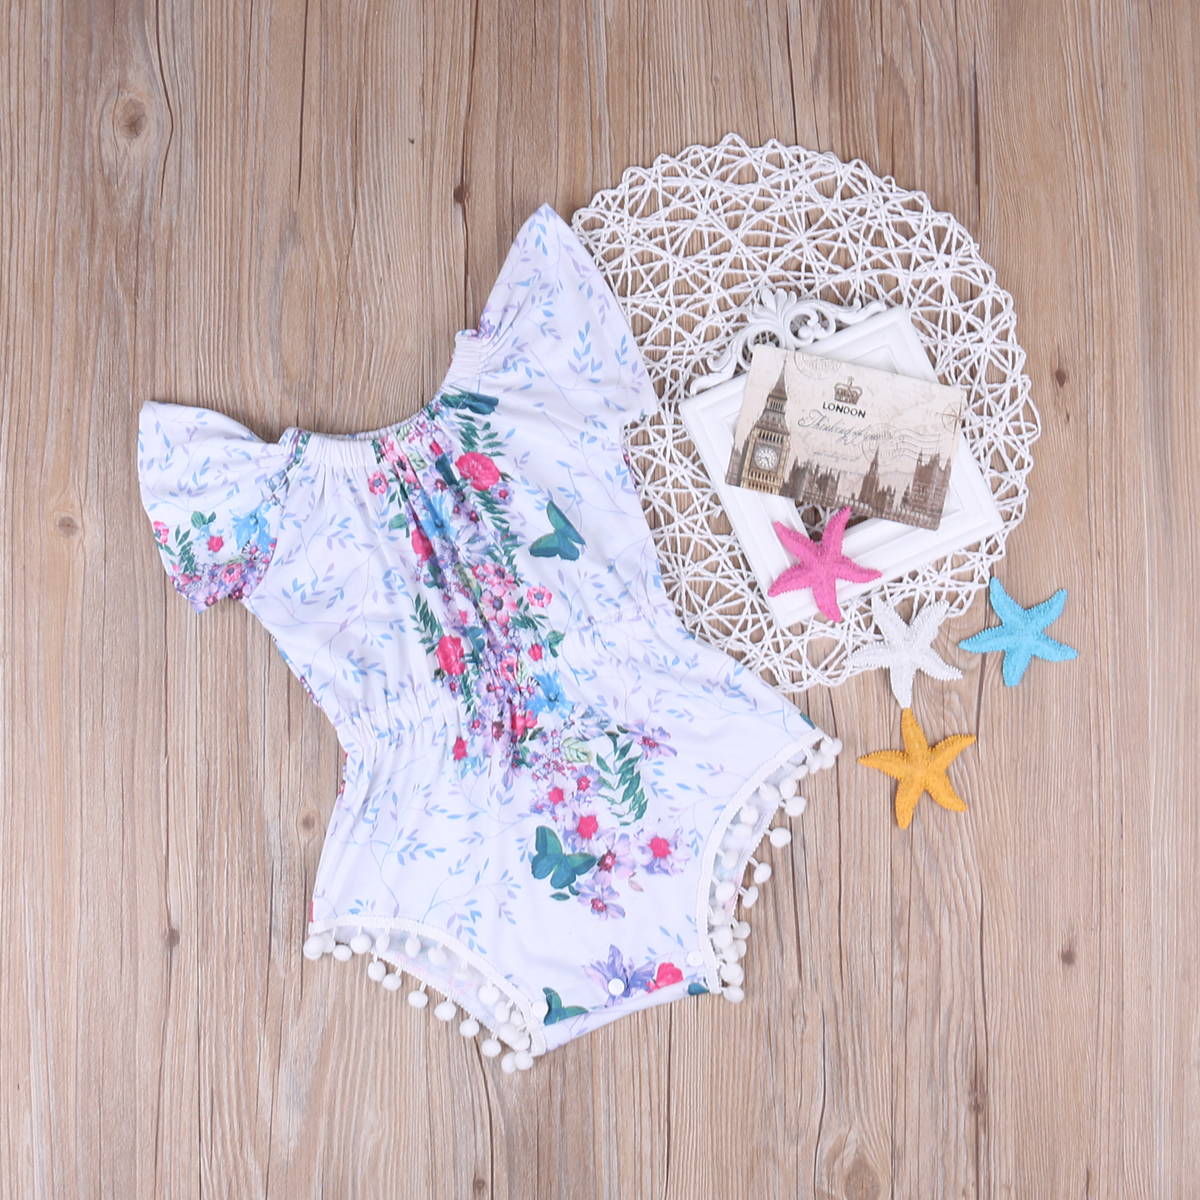 0-24M Summer Floral Baby Girl Romper Clothes Cute Newborn Infant Bebes Tassel Rompers Toddler Kids Jumpsuit Outfit Sunsuit 2017 new fashion cute rompers toddlers unisex baby clothes newborn baby overalls ropa bebes pajamas kids toddler clothes sr133